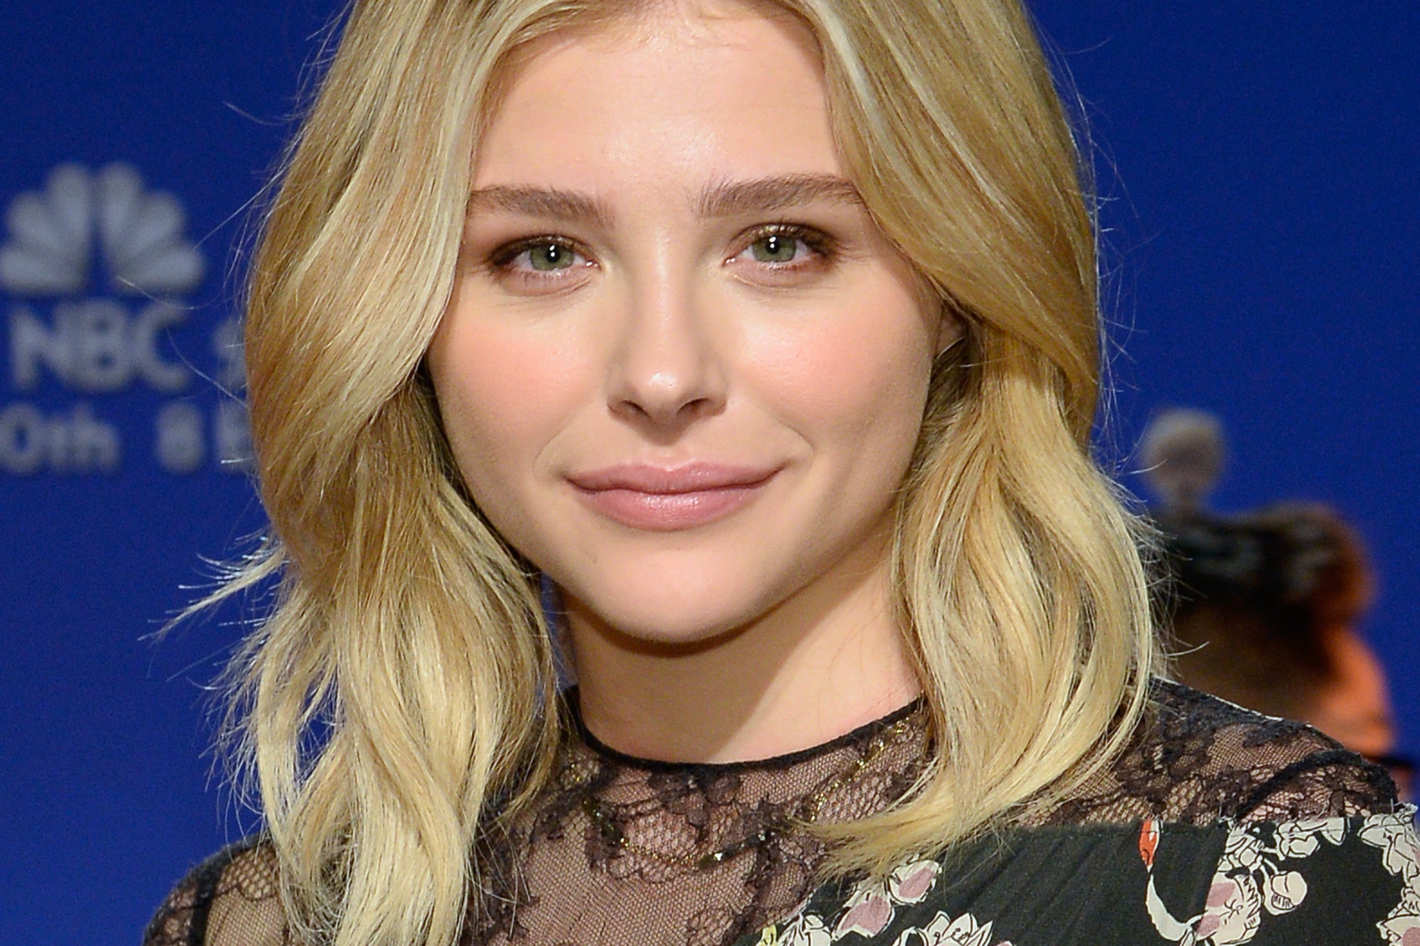 Chloe Grace Moretz Gets Candid About Growing Up Famous And ...